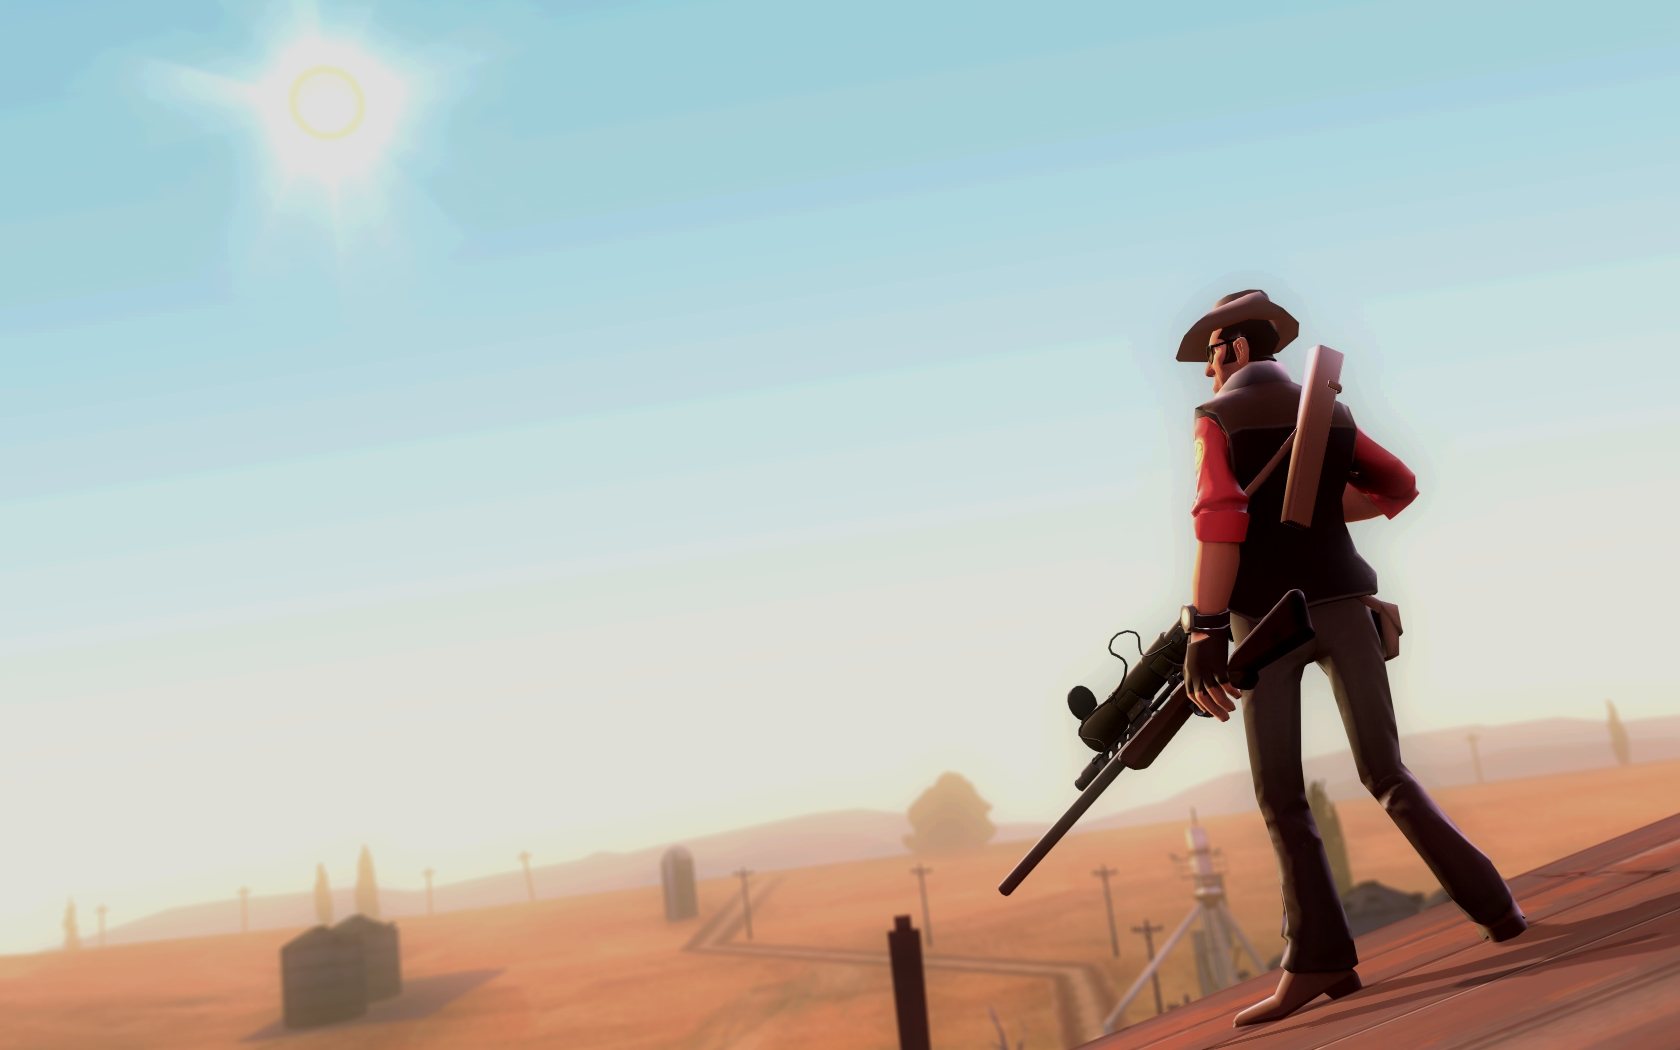 356 team fortress 2 hd wallpapers background images wallpaper 356 team fortress 2 hd wallpapers background images wallpaper abyss voltagebd Choice Image